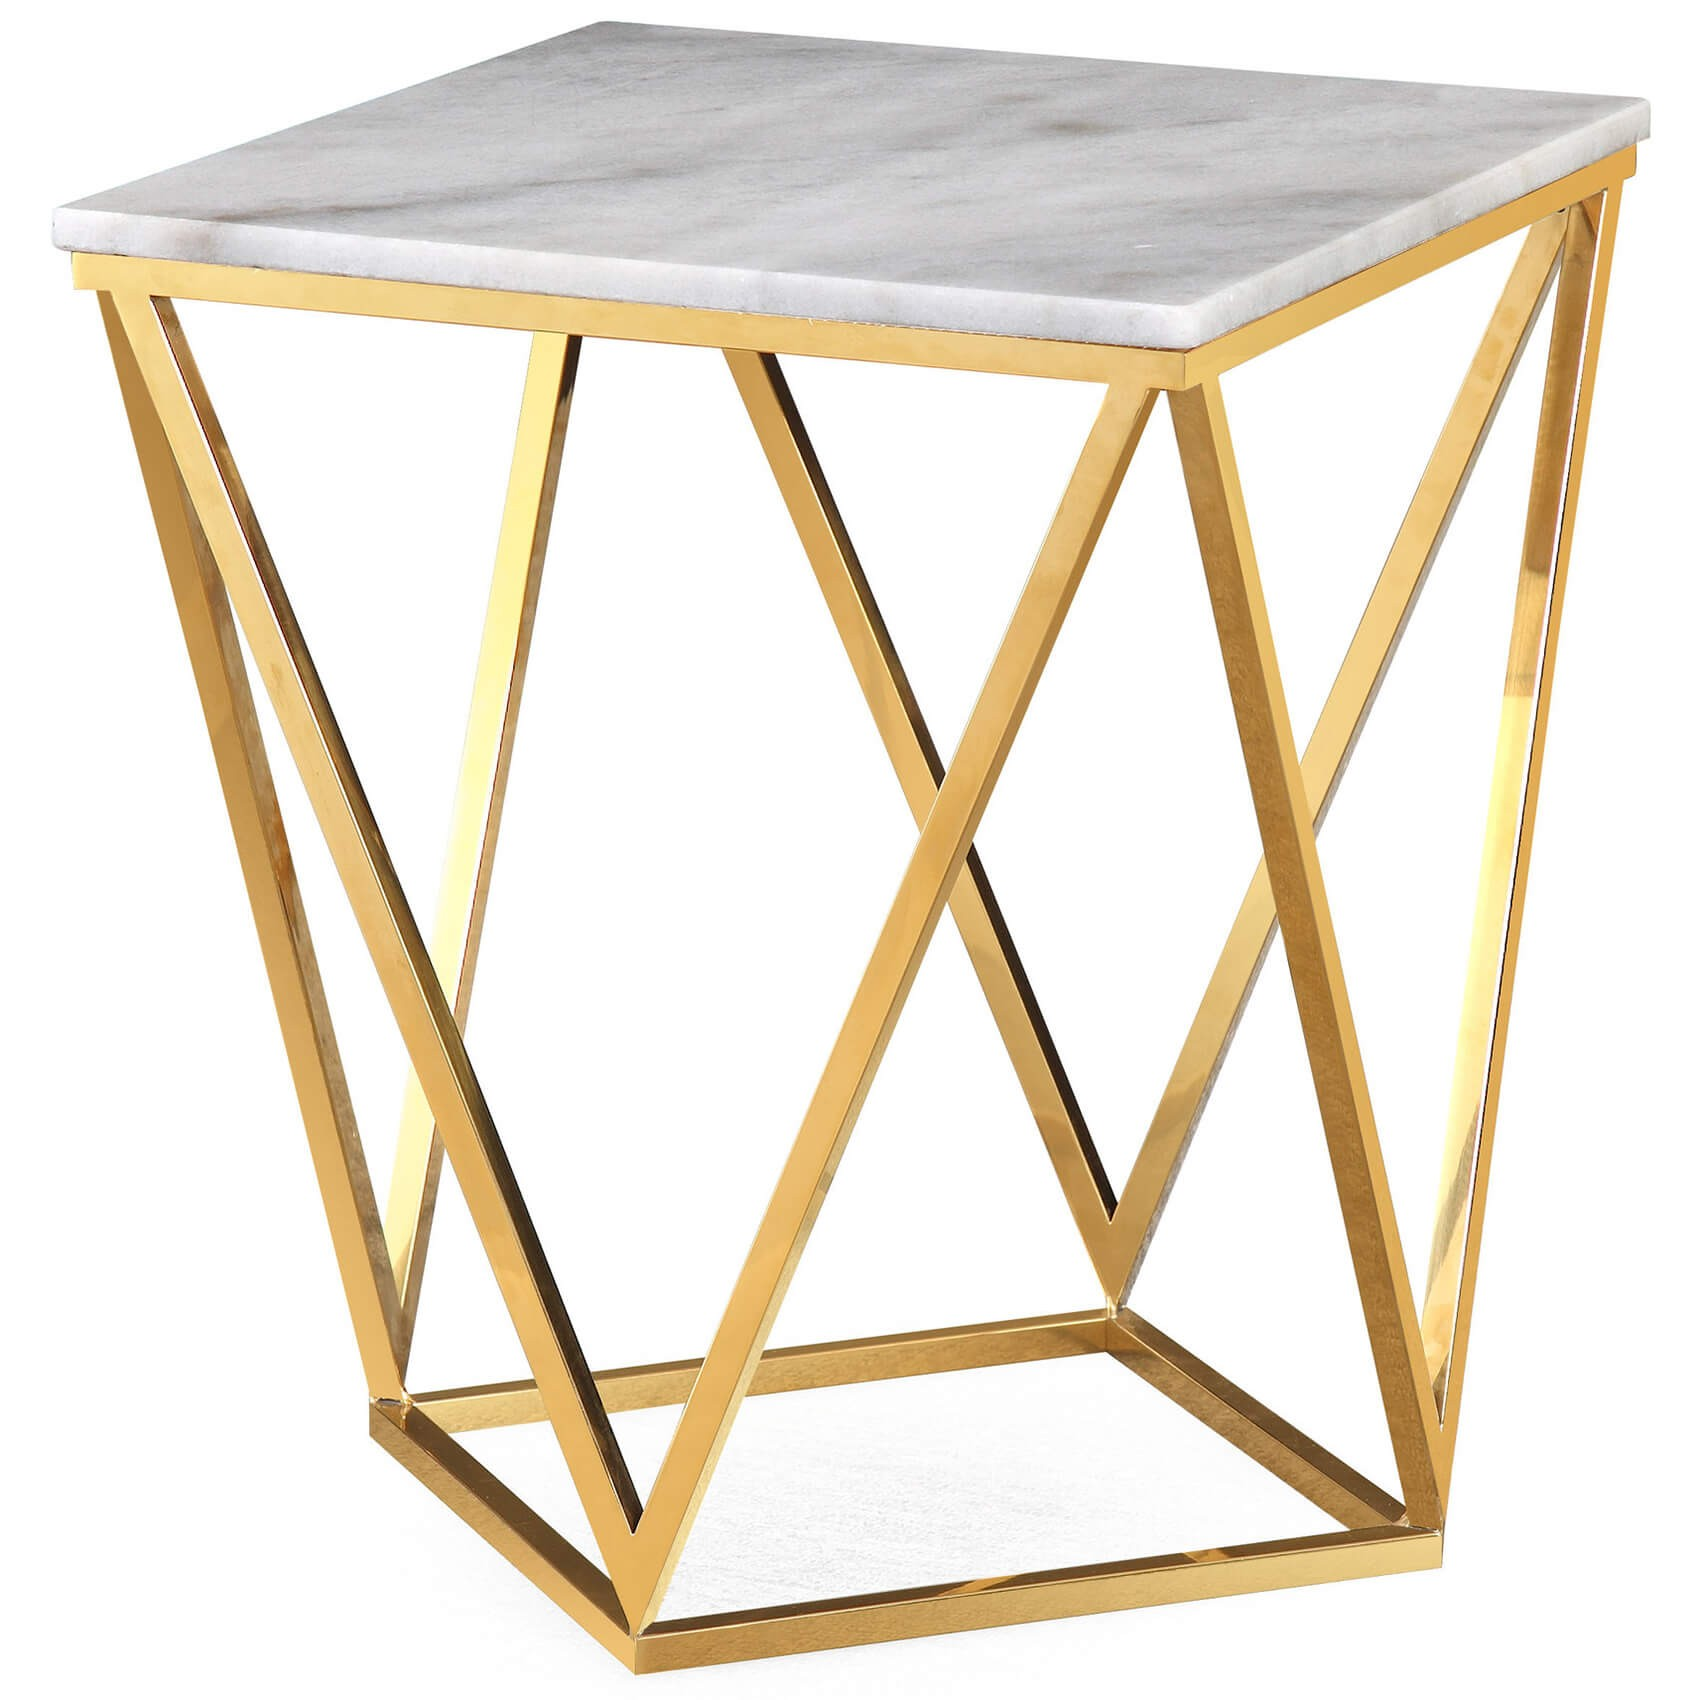 leopold side table white marble end tables accent furniture ikea kids storage unfinished bookcases victorian lamps extendable trestle dining modern lamp night stand light rustic